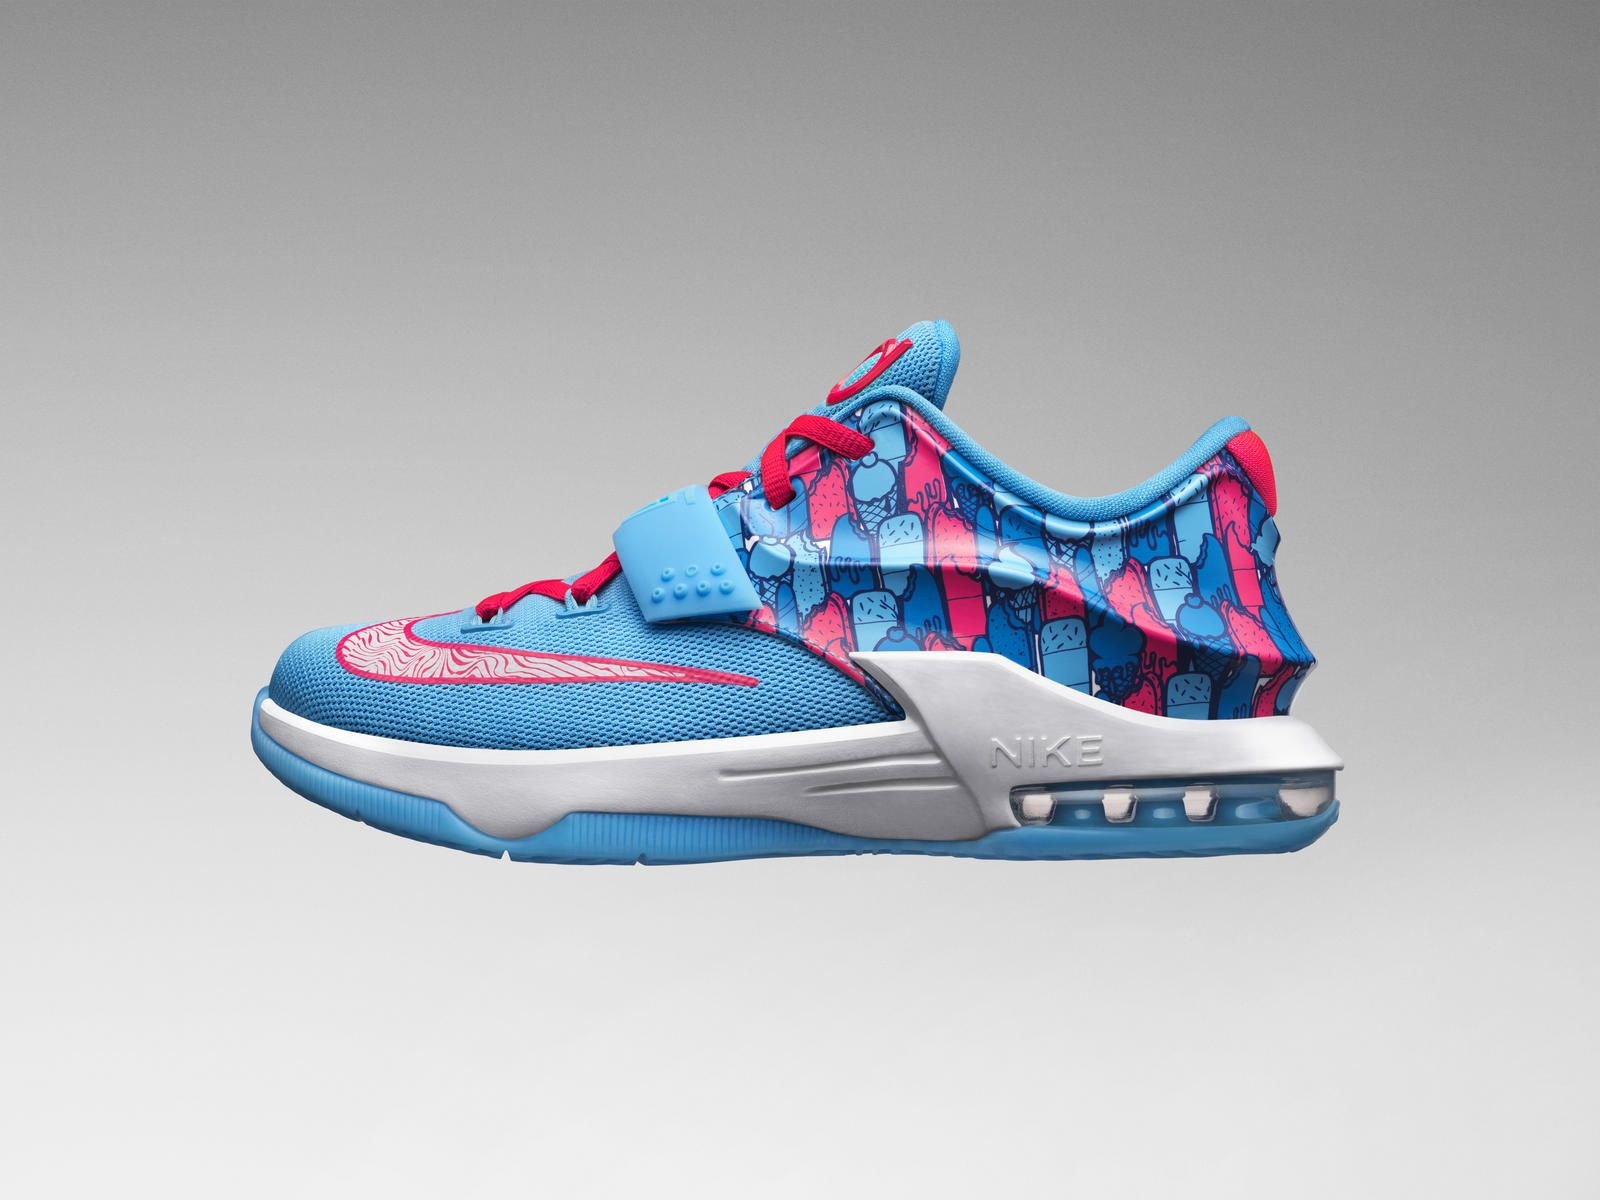 79e26934a1a37 Nike News - Chillin  With KD  The KD7 Frozens Shoe Arrives Just In Time For  Summer Fun